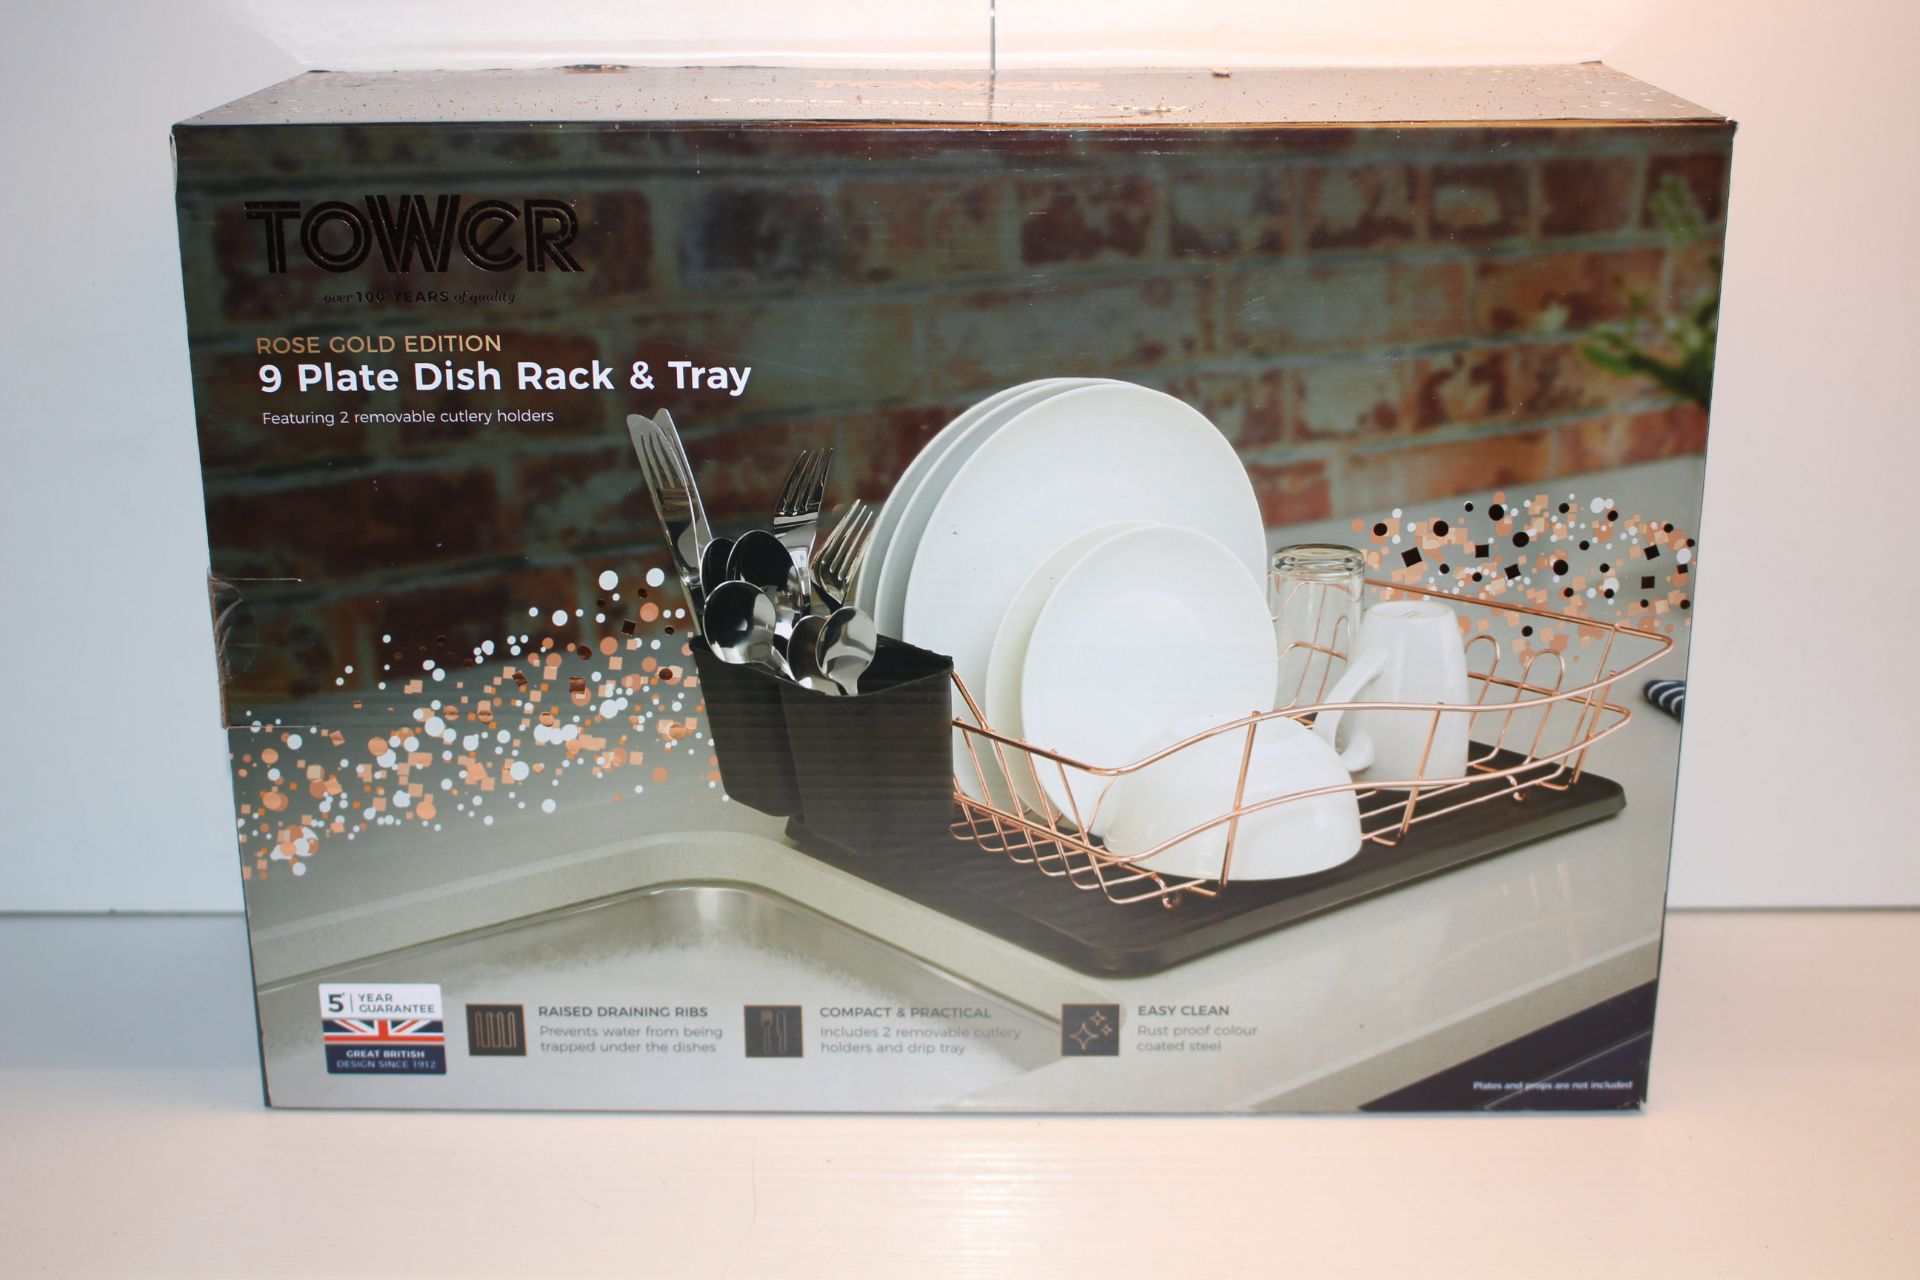 BOXEDE TOWER 9 PLATE DISH RACK ANMD TRAY ROSE GOLD EDITIONCondition ReportAppraisal Available on